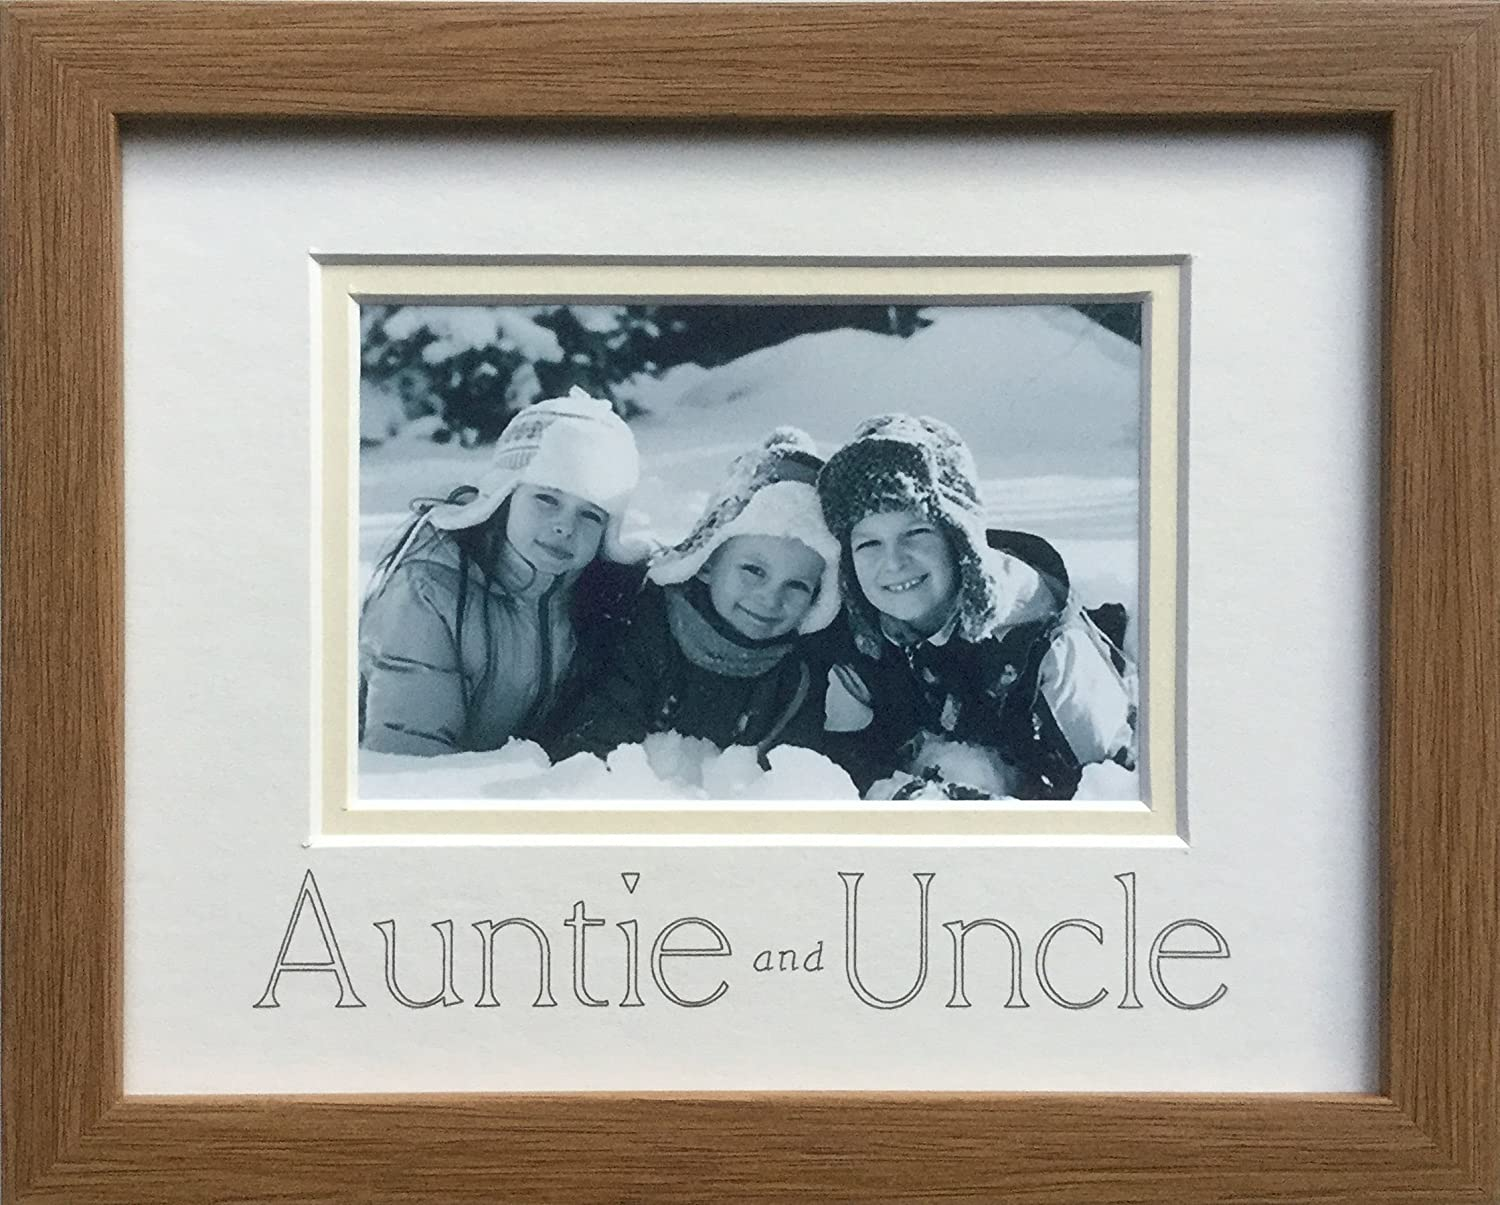 Auntie and Uncle Bilderrahmen 9 x 7 Eiche: Amazon.de: Küche & Haushalt